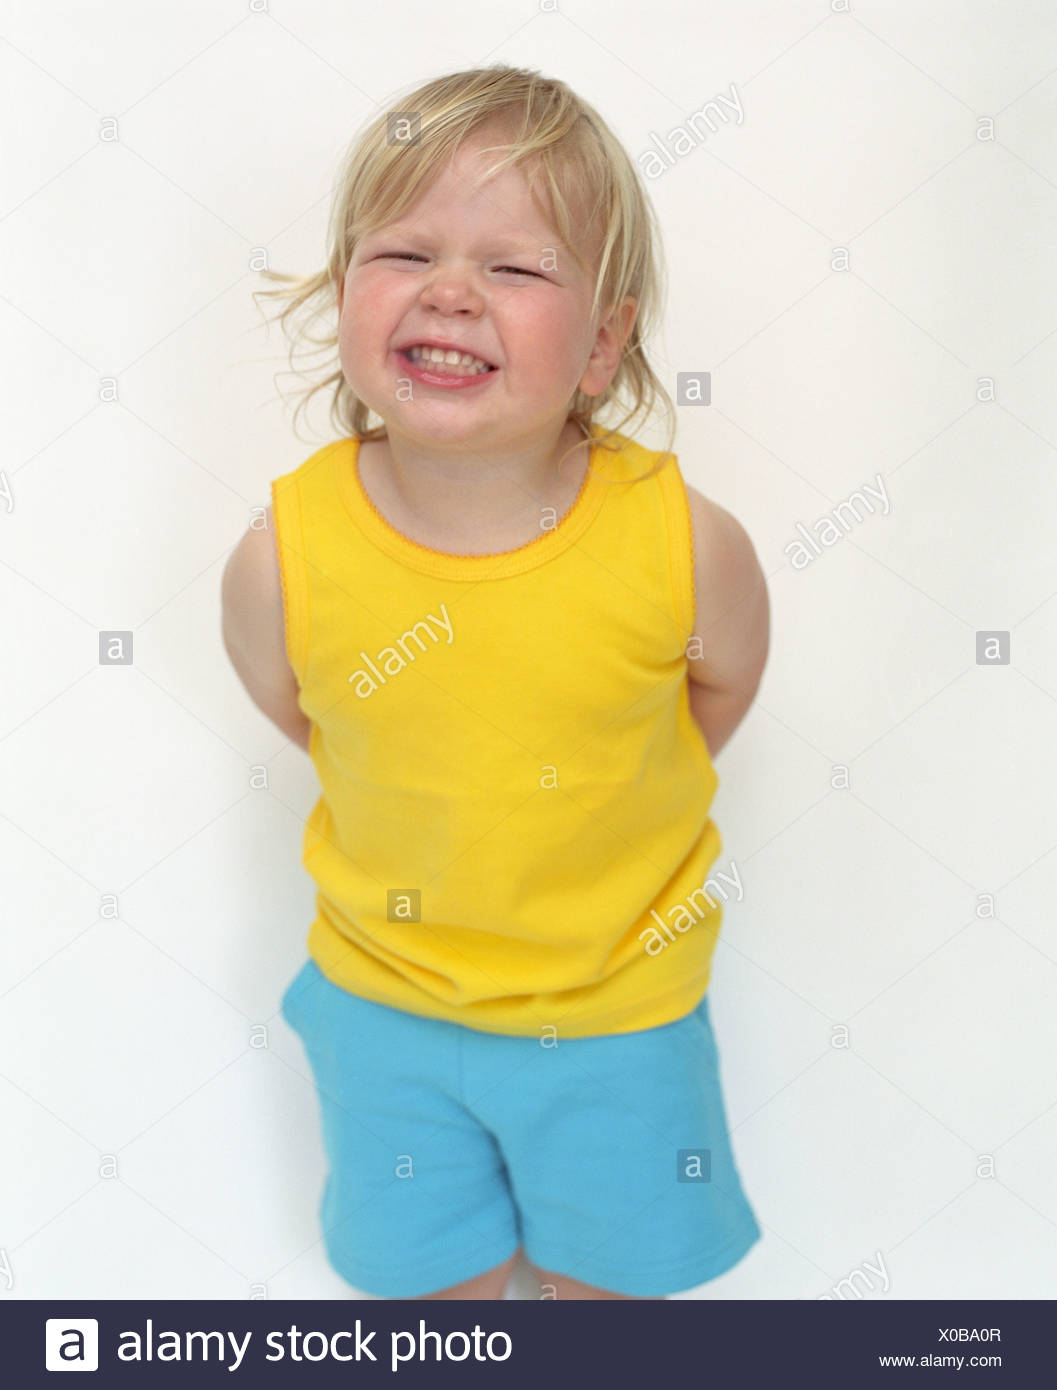 little girl with cheeky expression - Stock Image